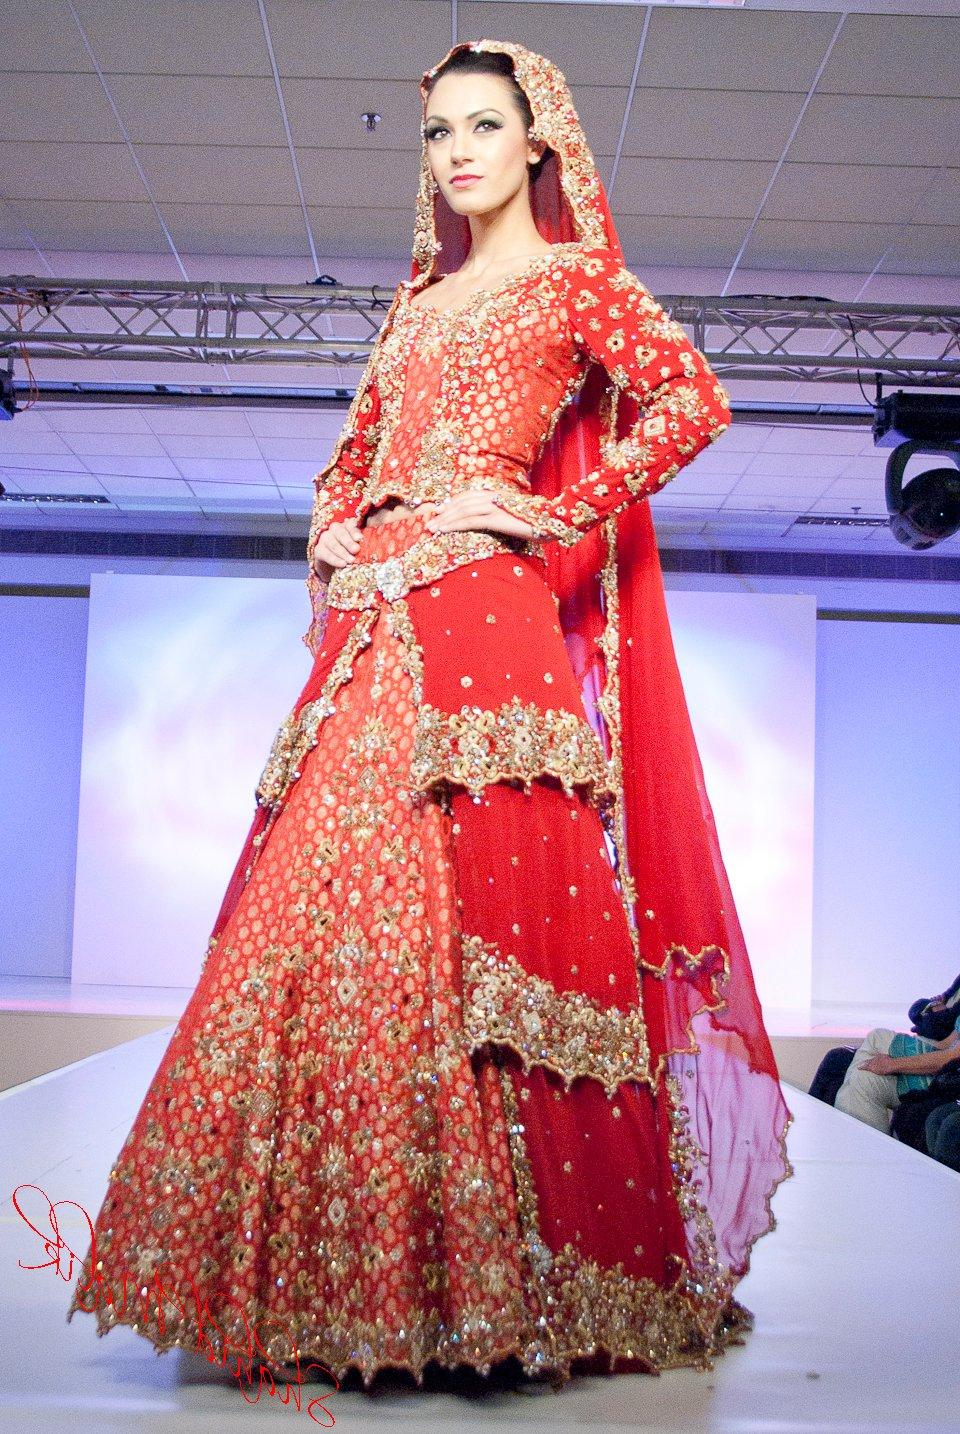 Indian Wedding Show 2011